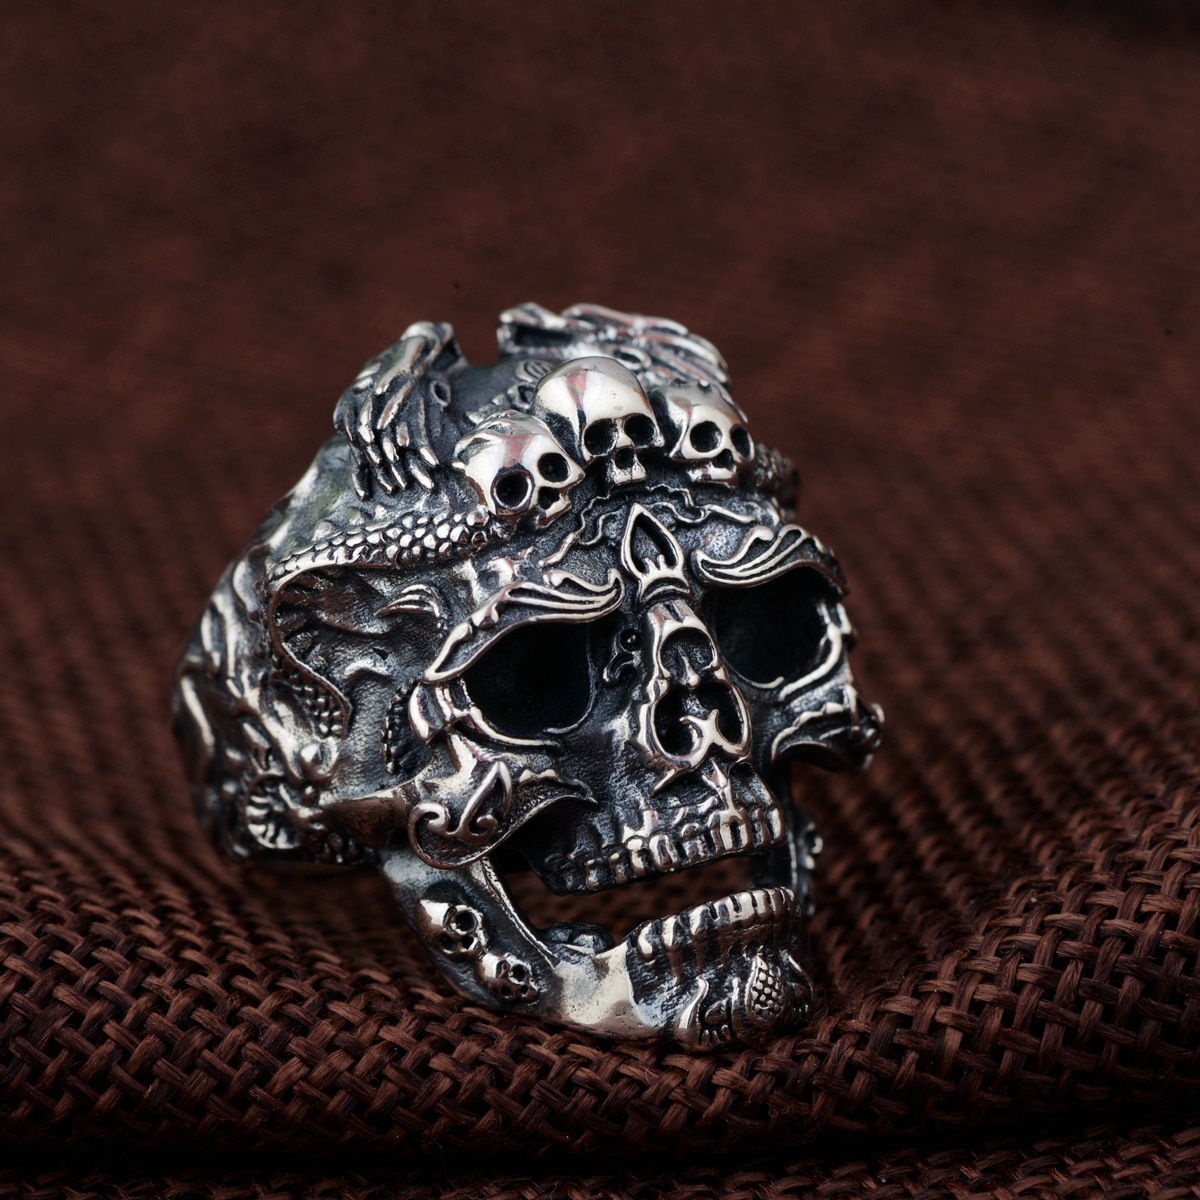 Personalized Skull Head Mens Rings Biker Big Heavy Resizable 925 Sterling Silver Vintage Punk Gothic Rings